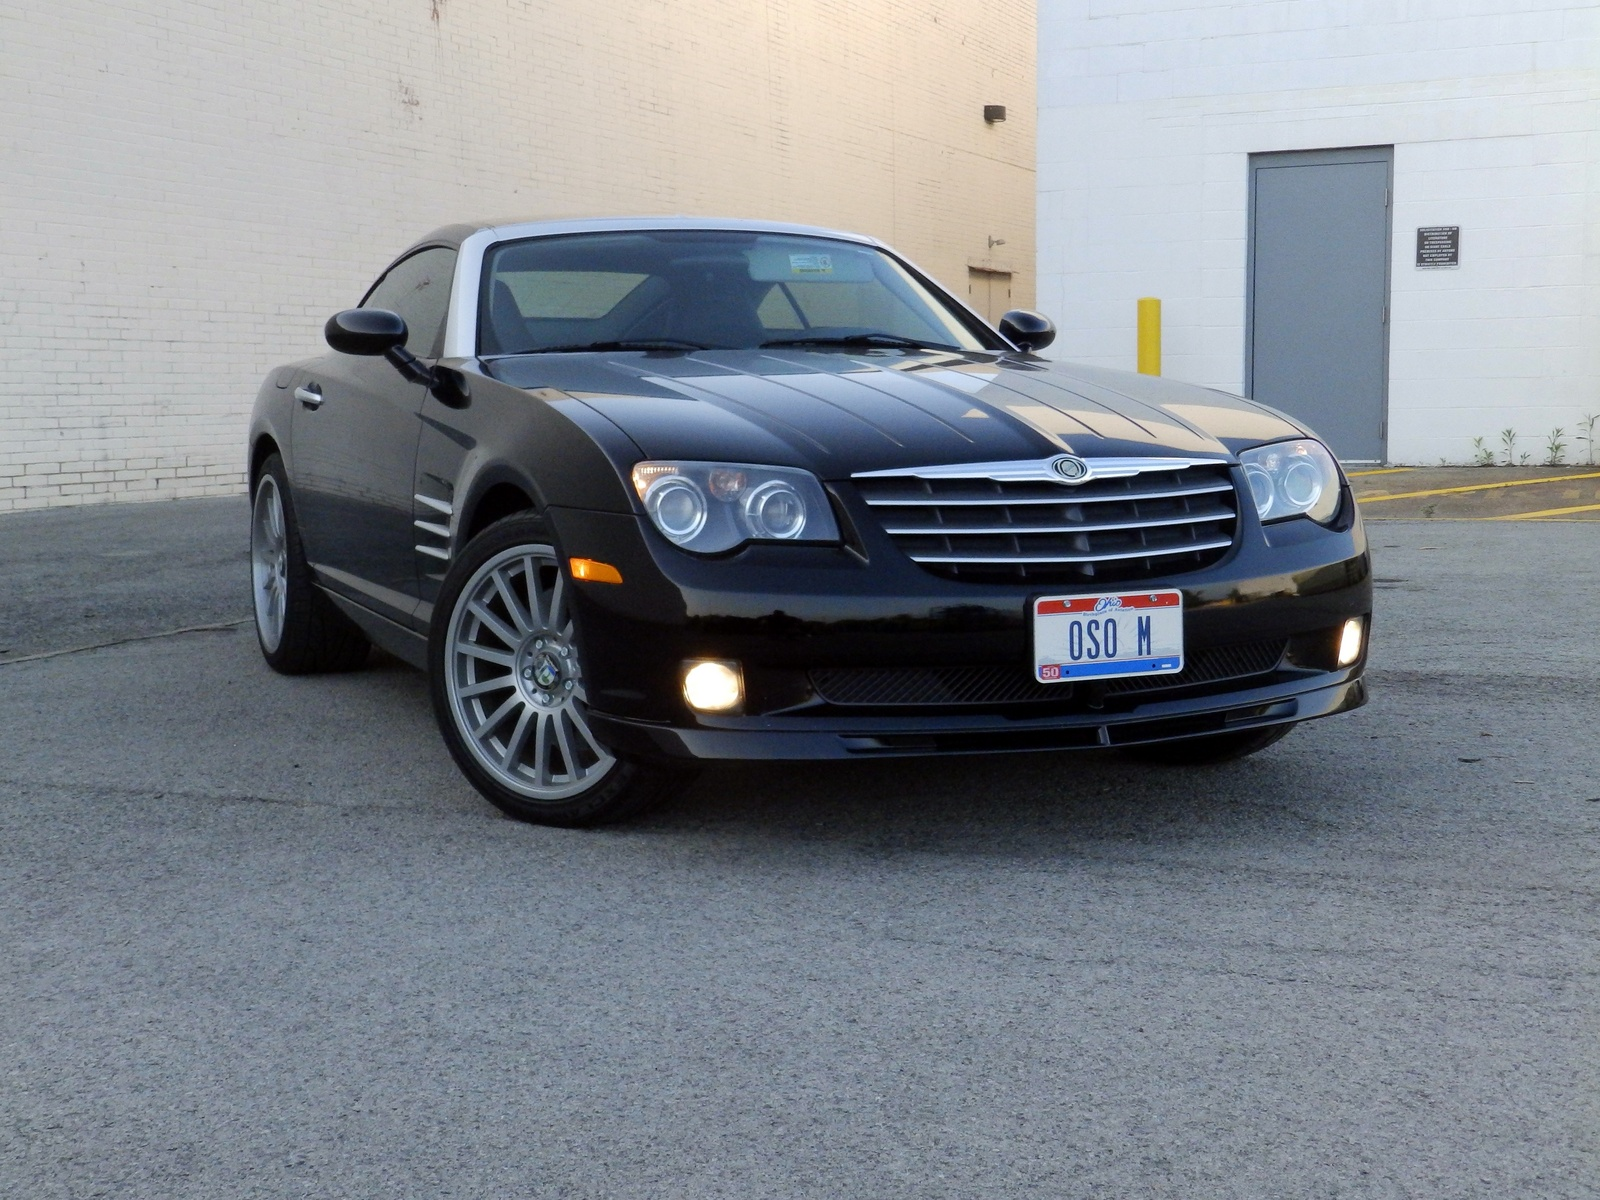 chrysler crossfire srt 6 2 dr supercharged hatchback pic. Cars Review. Best American Auto & Cars Review